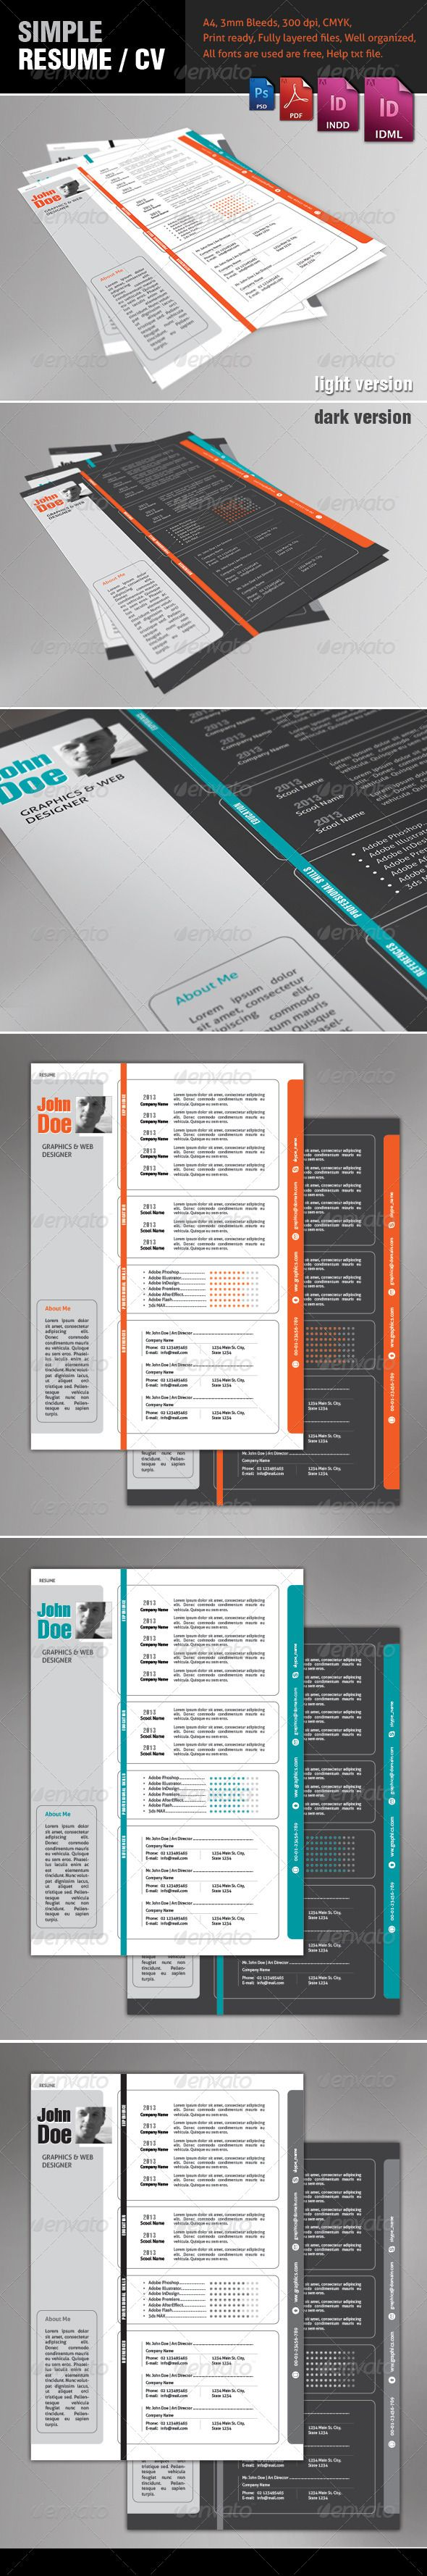 Resume Template  Adobe Indesign Adobe Photoshop And Adobe